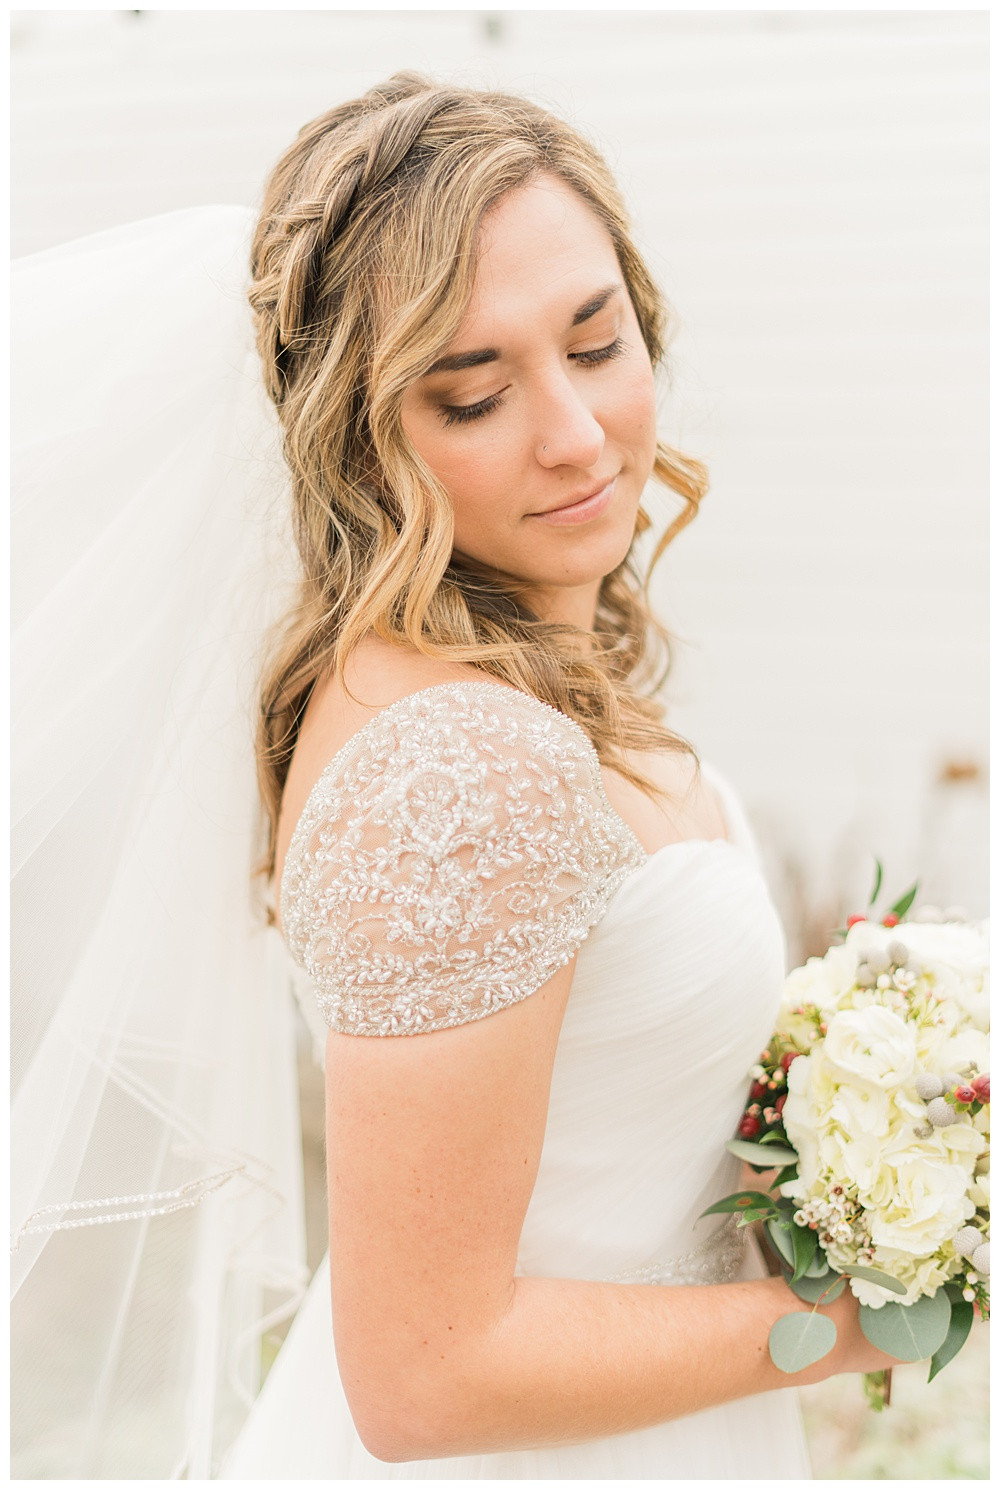 winter wedding, Kyle house, Virginia wedding, Austin & Austin Photography, bride